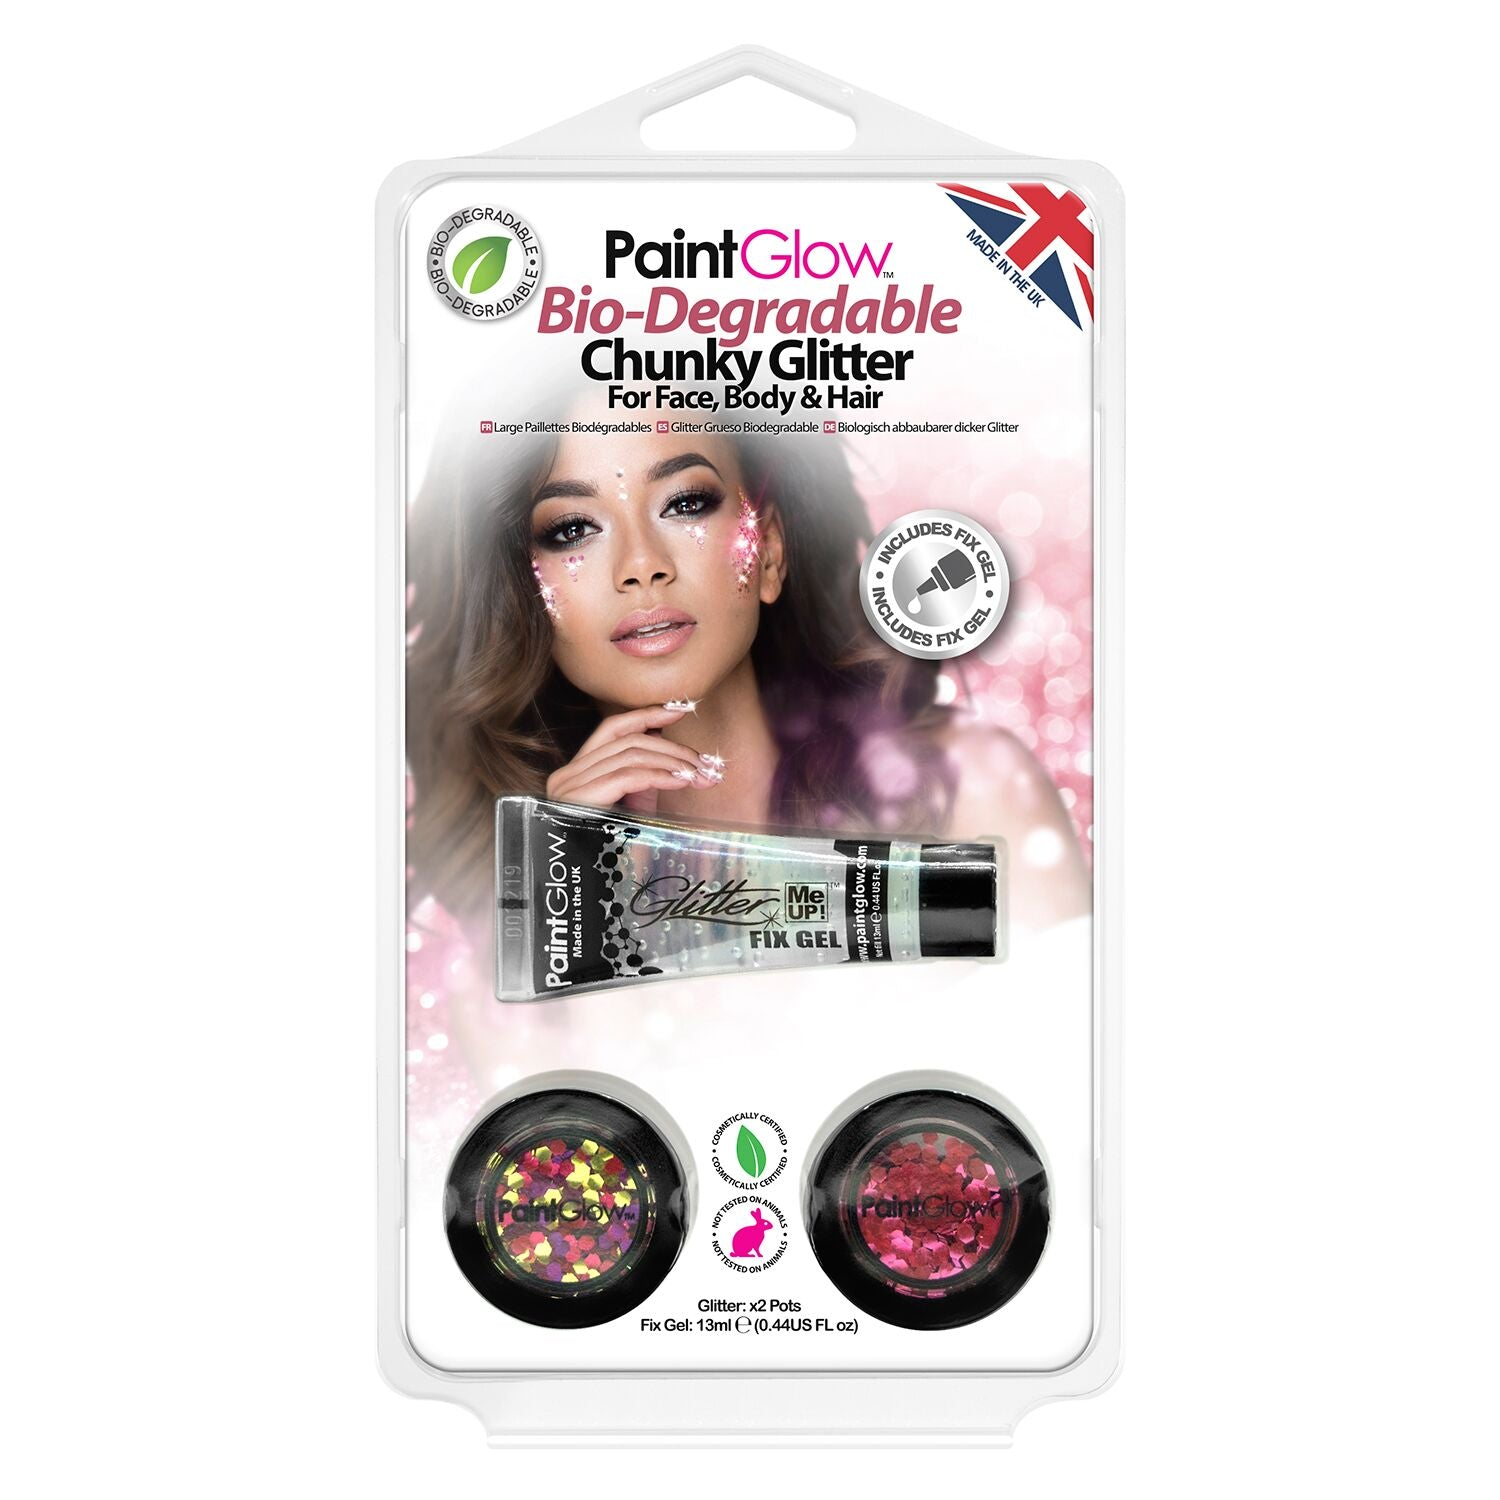 PaintGlow Bio-Degradable Chunky Glitter for Face, Body & Hair (Pack 5)